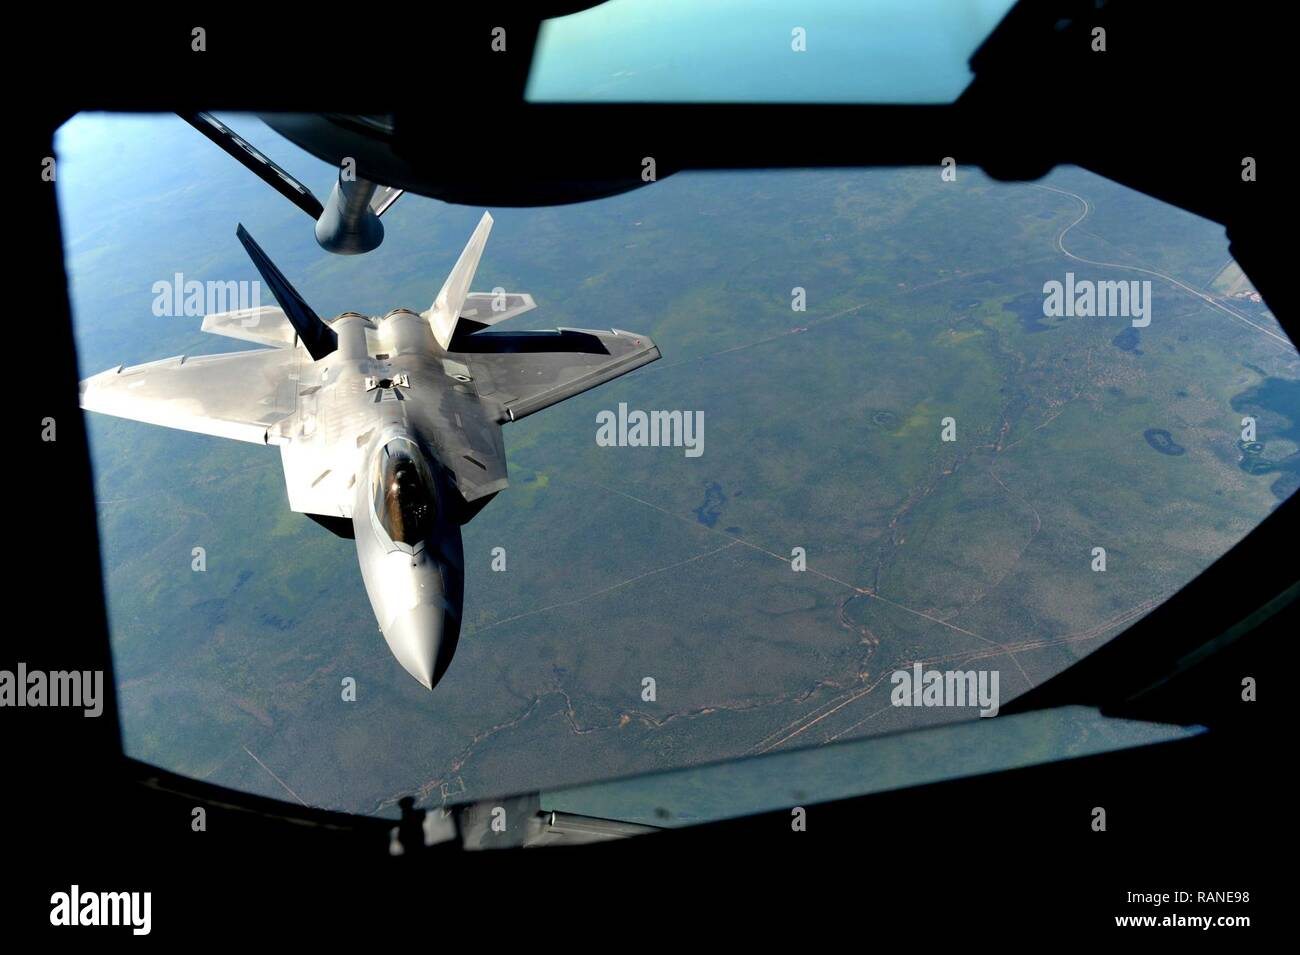 A U.S. Air Force F-22 Raptor assigned to the 90th Fighter Squadron approaches a U.S. Air Force KC-135 Stratotanker in order to receive fuel in the skies above Royal Australian Air Force Base Tindal, Australia, March 2, 2017. Twelve F-22 Raptors and approximately 200 U.S. Air Force Airmen participated in the first Enhanced Air Cooperation, an initiative under the Force Posture Agreement between the U.S. and Australia. - Stock Image